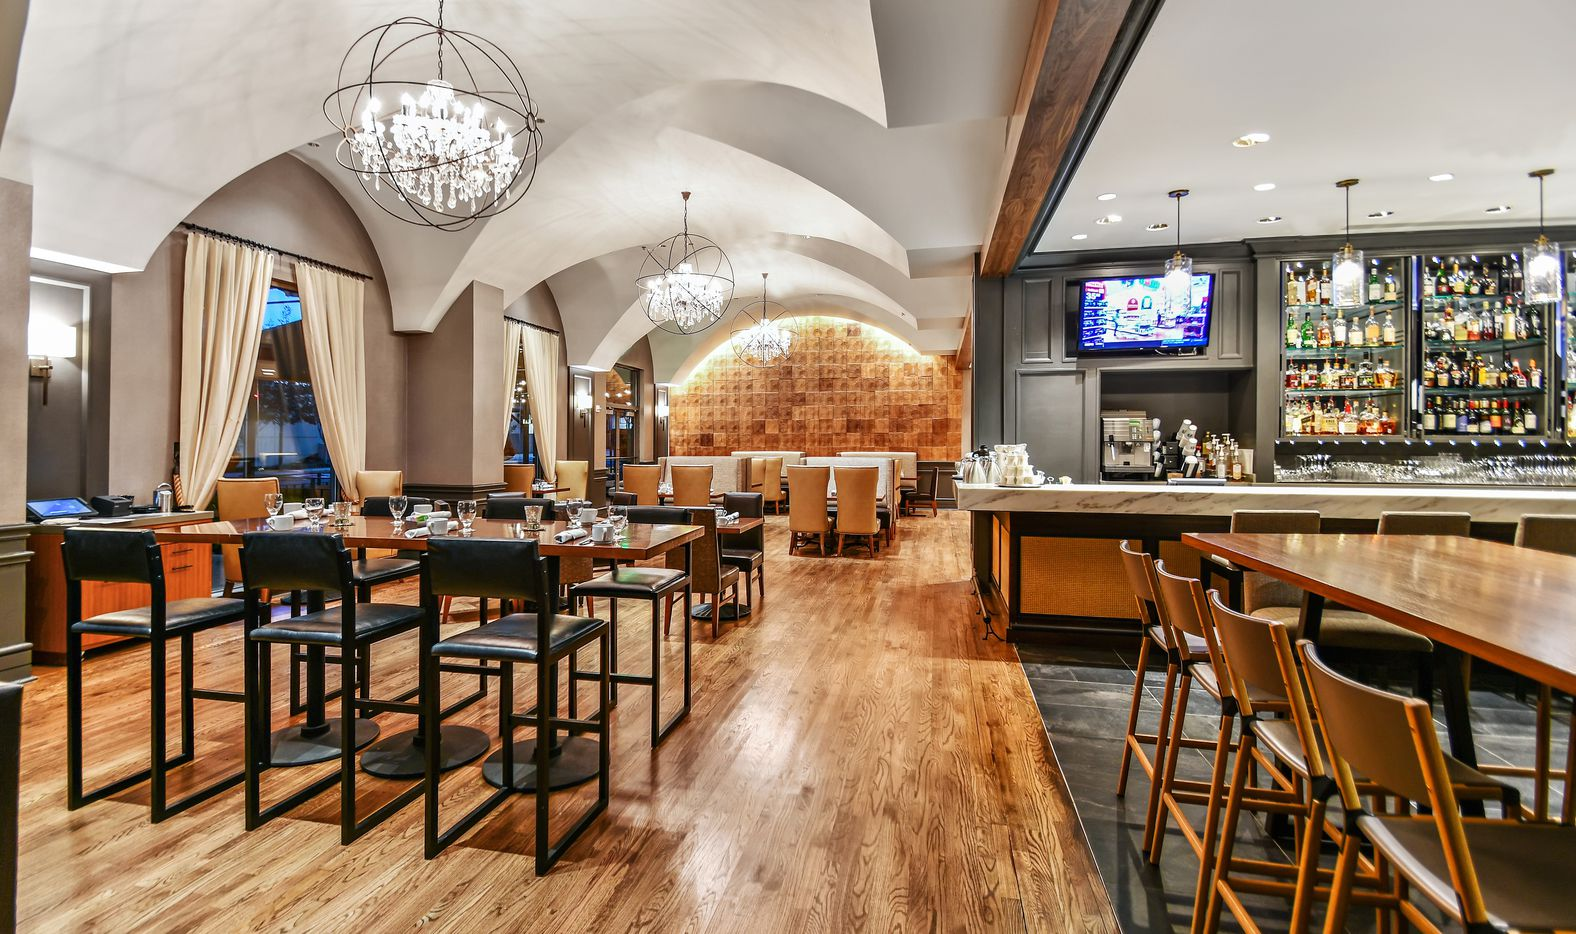 The remodeled bar and restaurant in the Hilton Dallas/Park Cities.